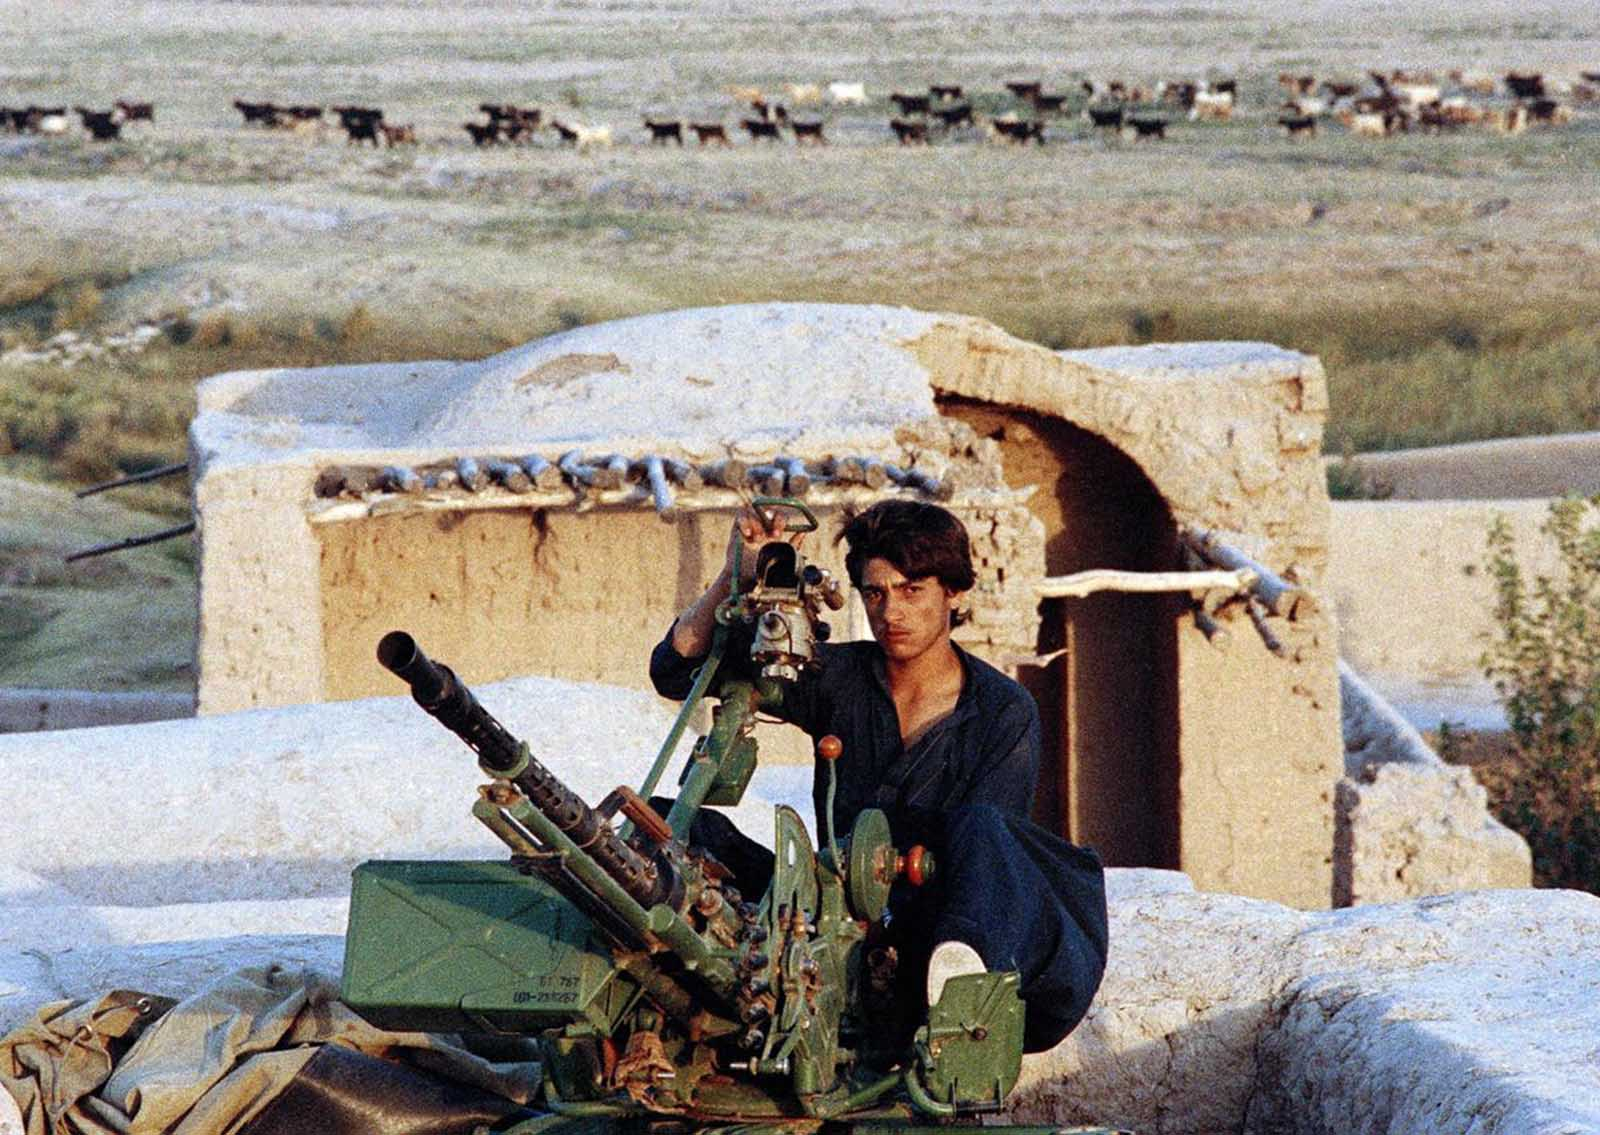 After the Soviet withdrawal. On a ruined fortress in the outskirts of the western Afghanistan city of Herat, a young man, formerly fighting for the Muslim guerrillas, but now on the payroll of the Afghan government, mans a weapon as cattle peacefully make their way to water in the background, on August 30, 1989.